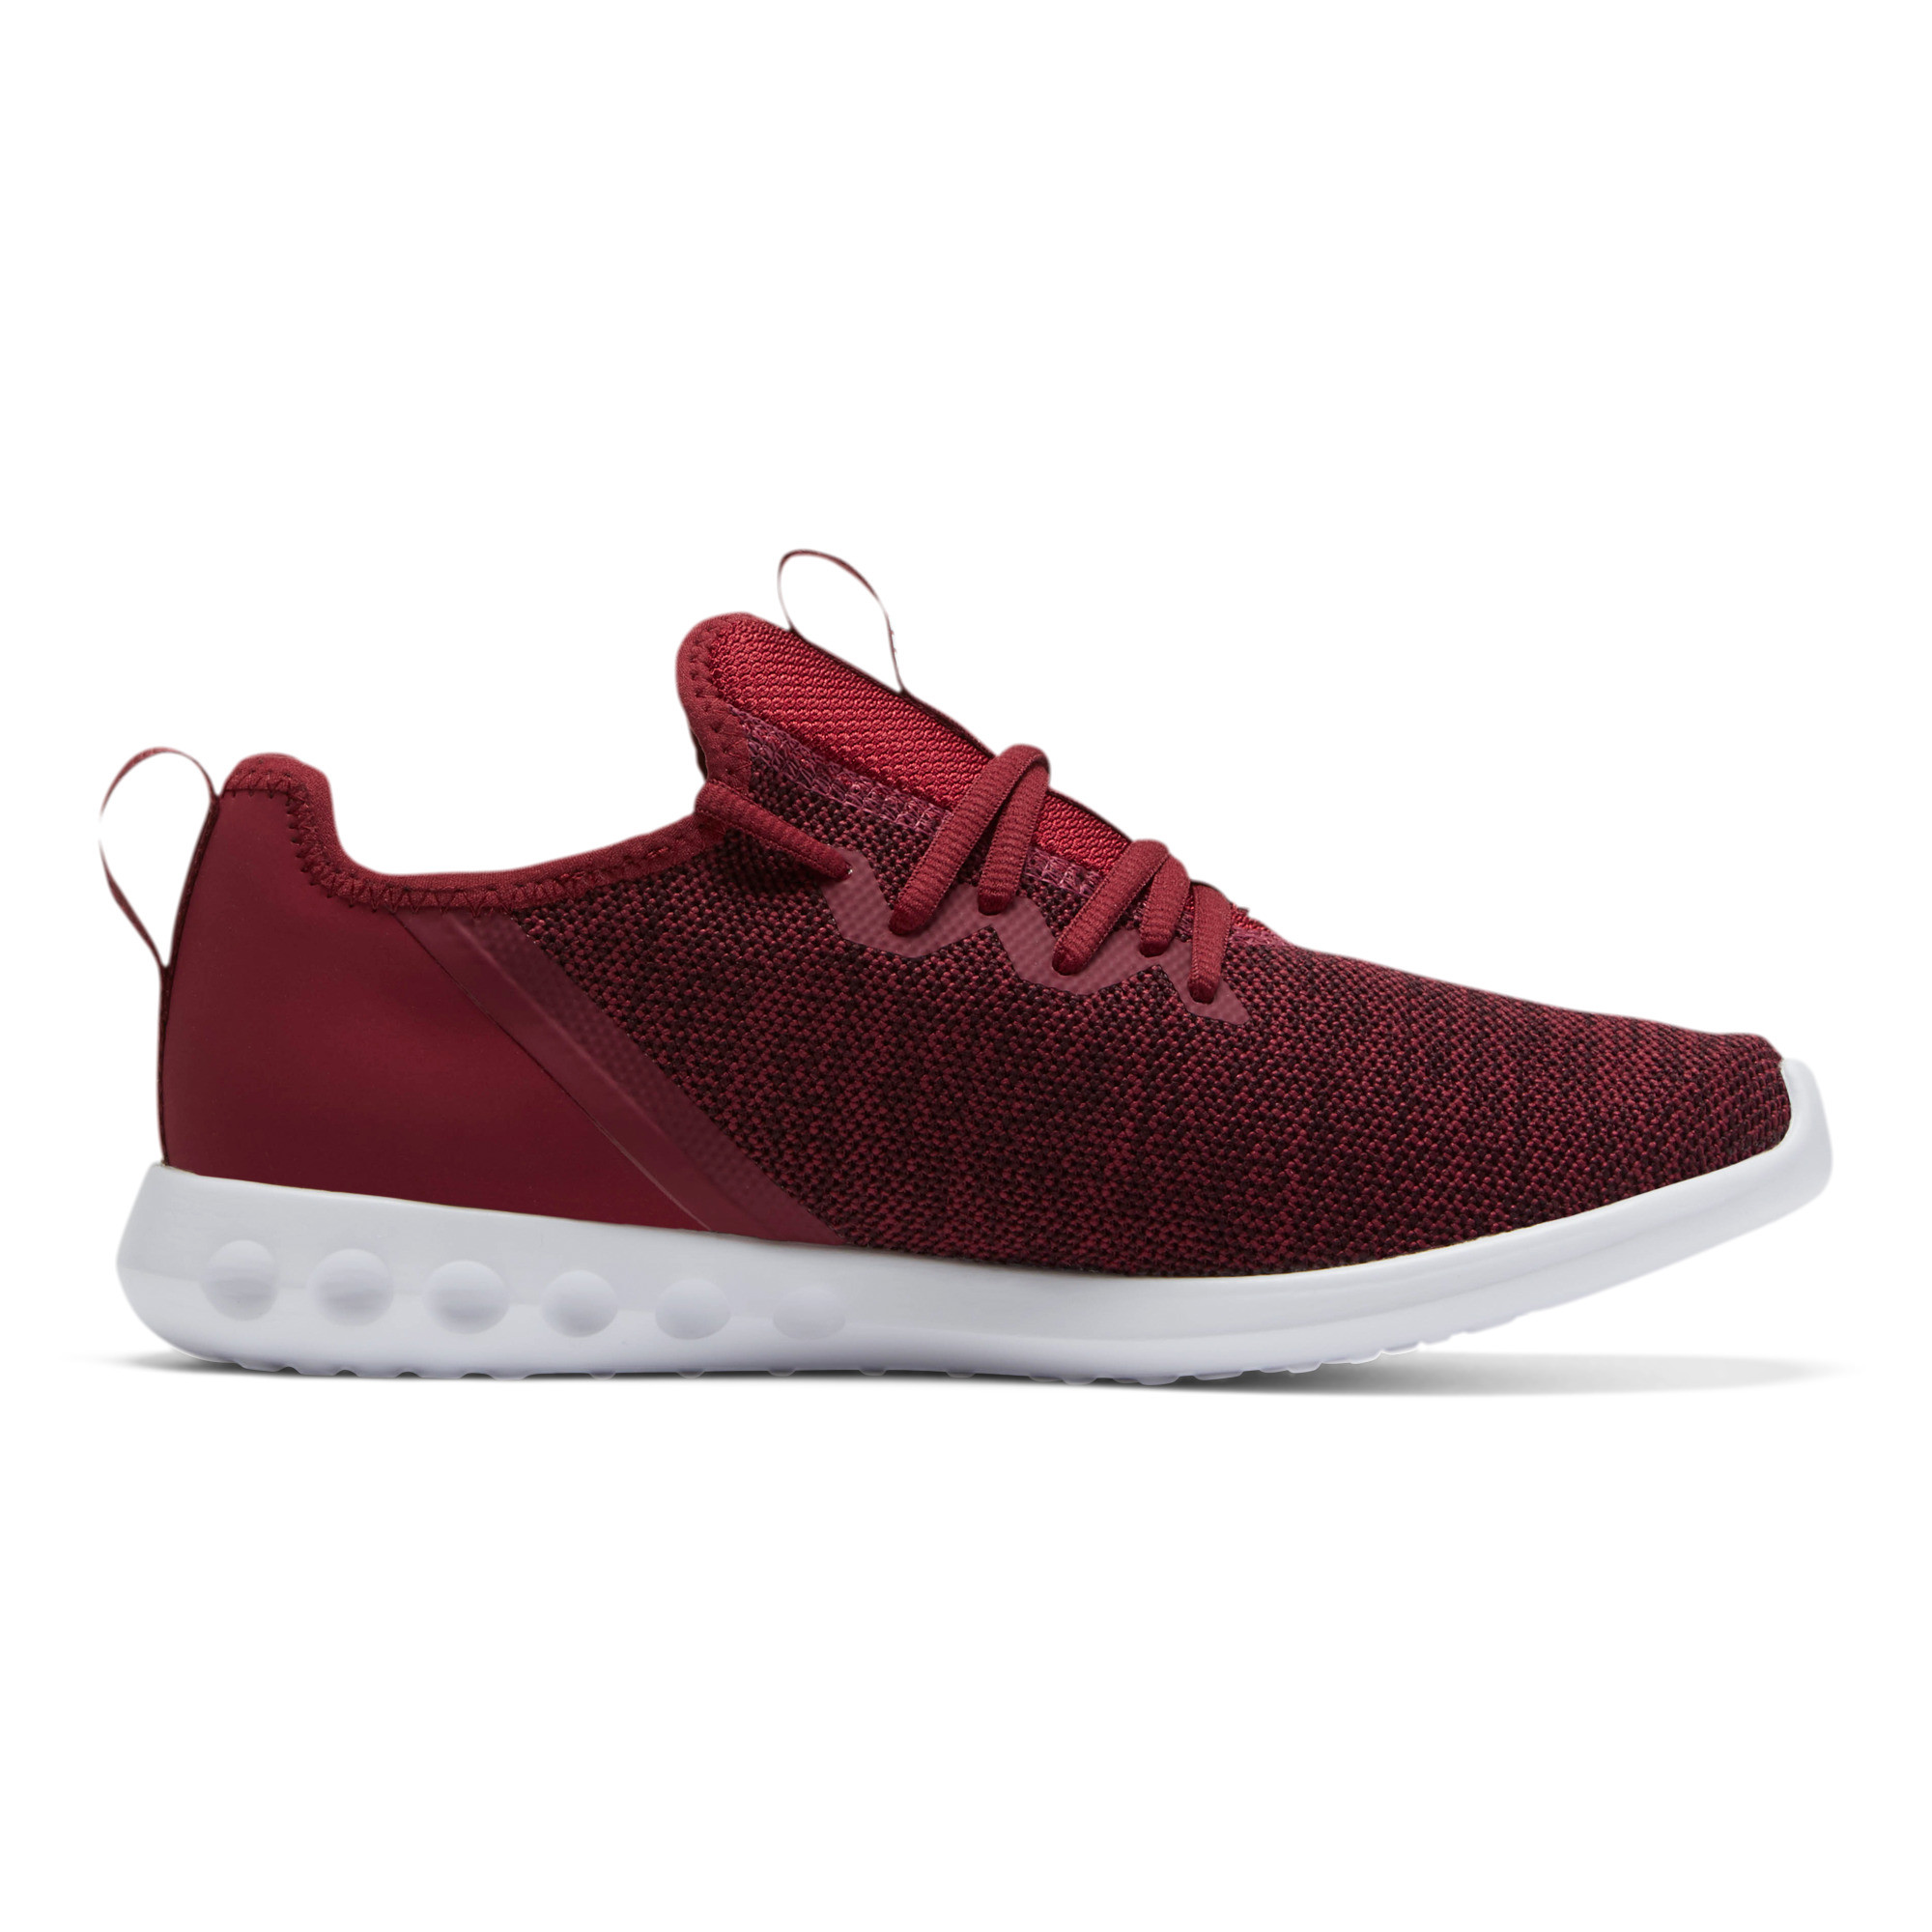 PUMA-Carson-2-X-Knit-Men-039-s-Running-Shoes-Men-Shoe-Running thumbnail 41